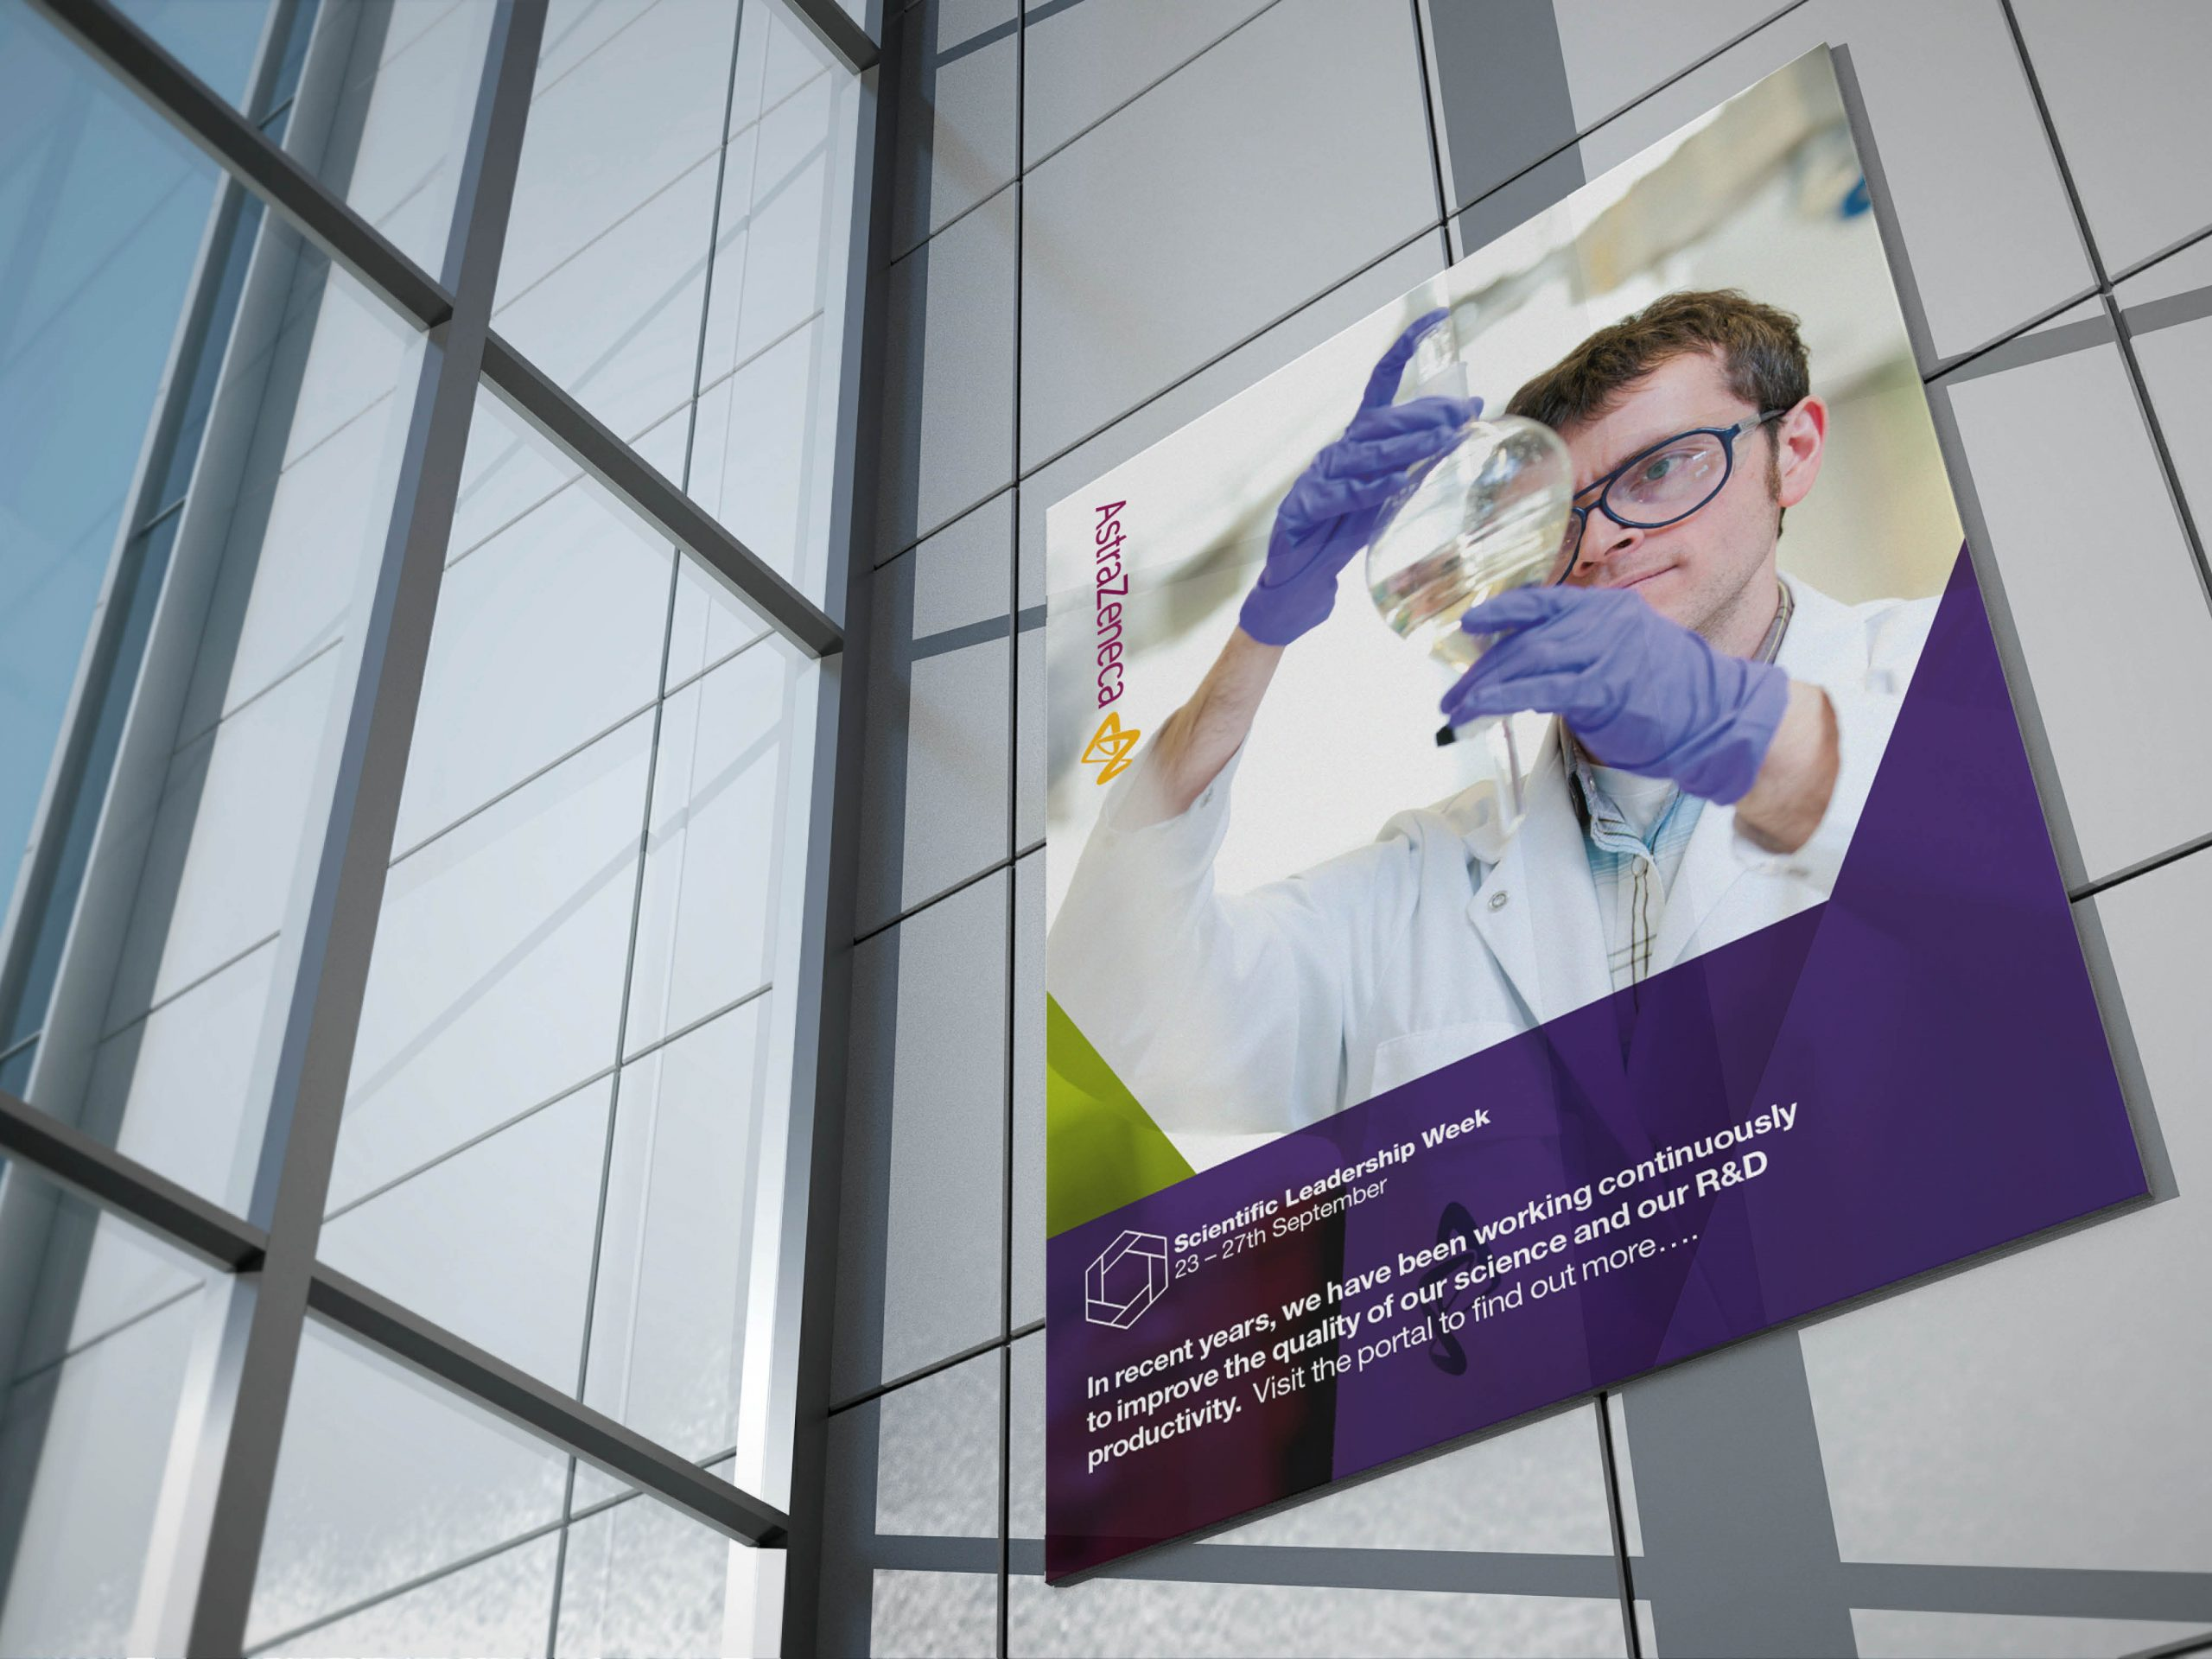 1231-AstraZeneca–Science-Leadership-Week–5